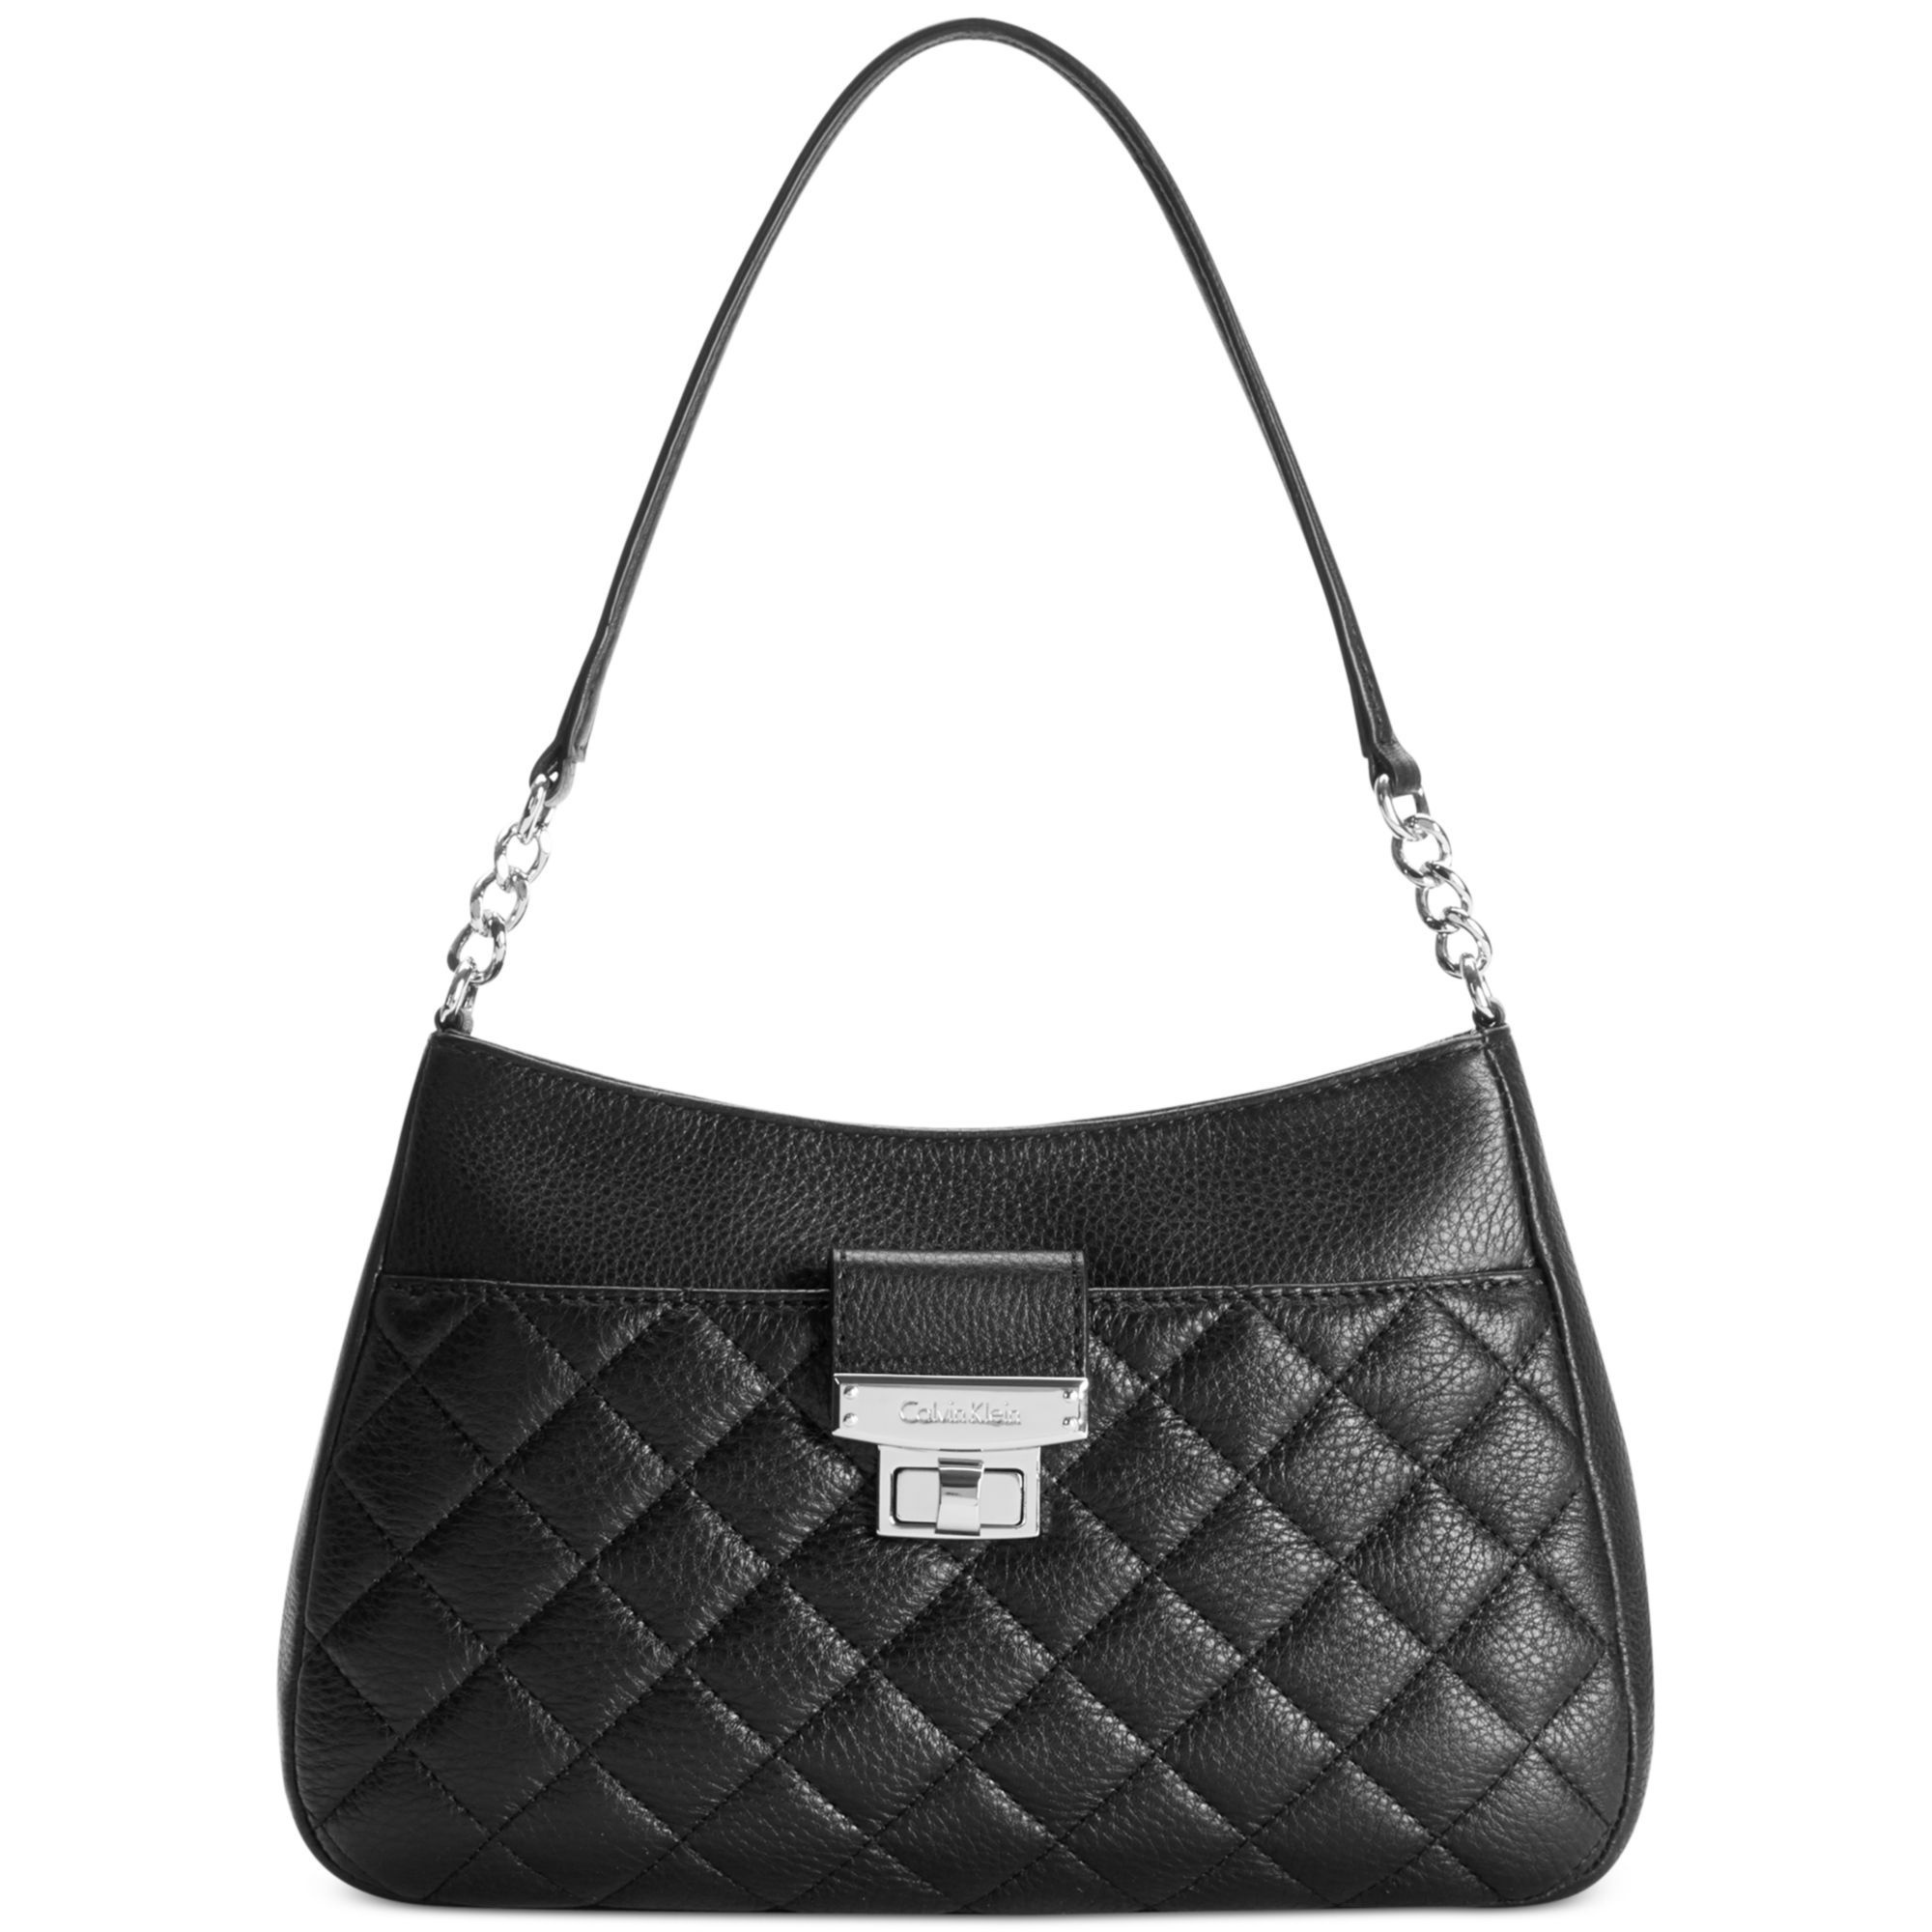 calvin klein quilted purses | Womans Wallets & Purses : calvin klein quilted purse - Adamdwight.com